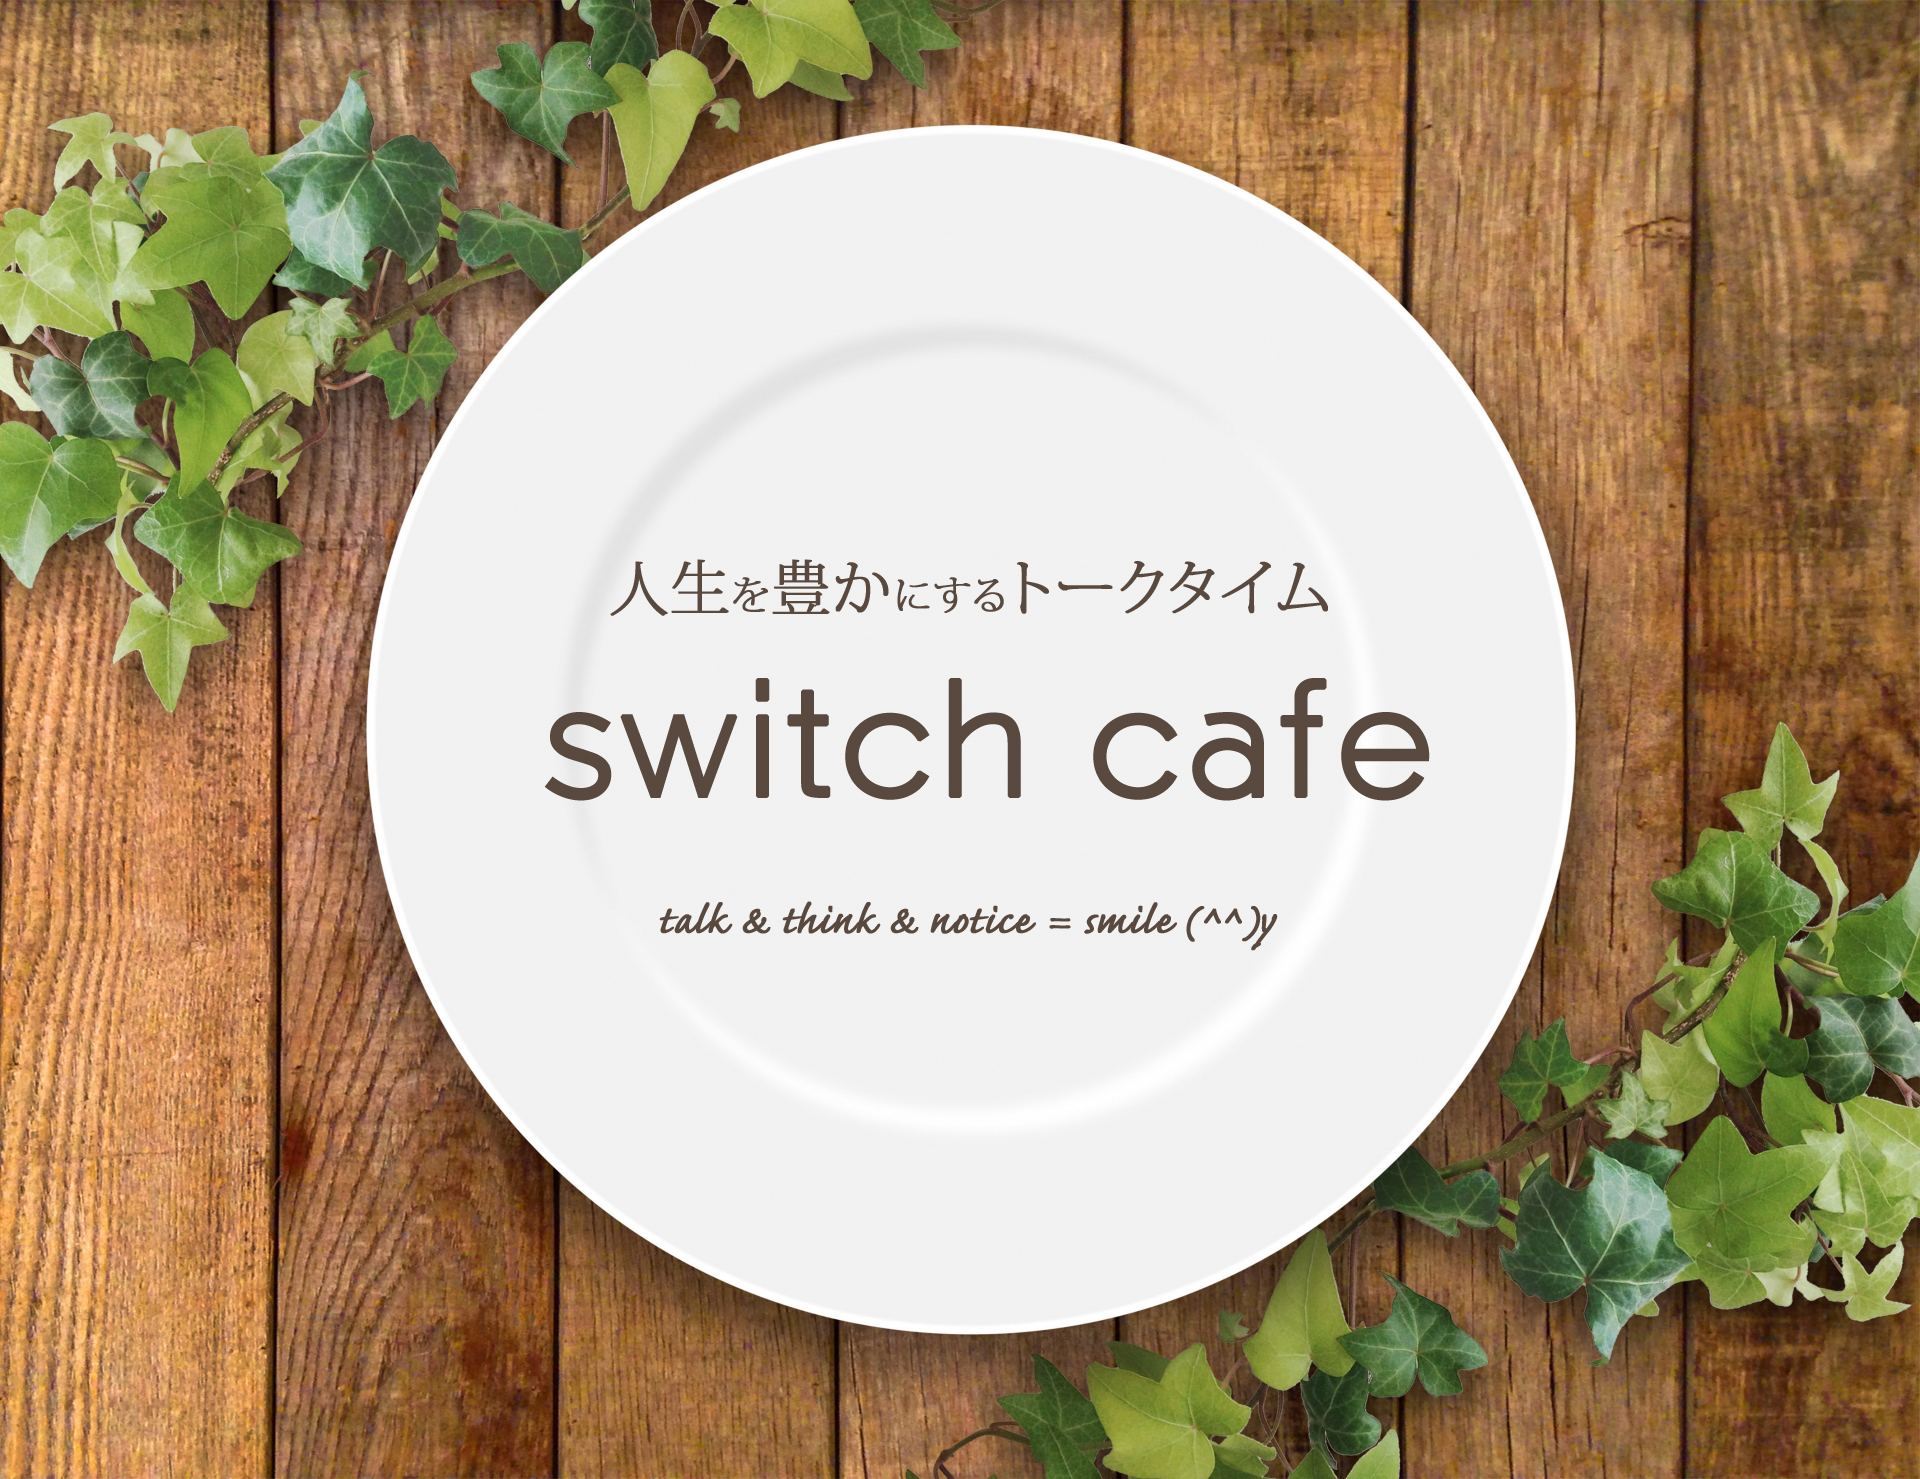 switchcafe